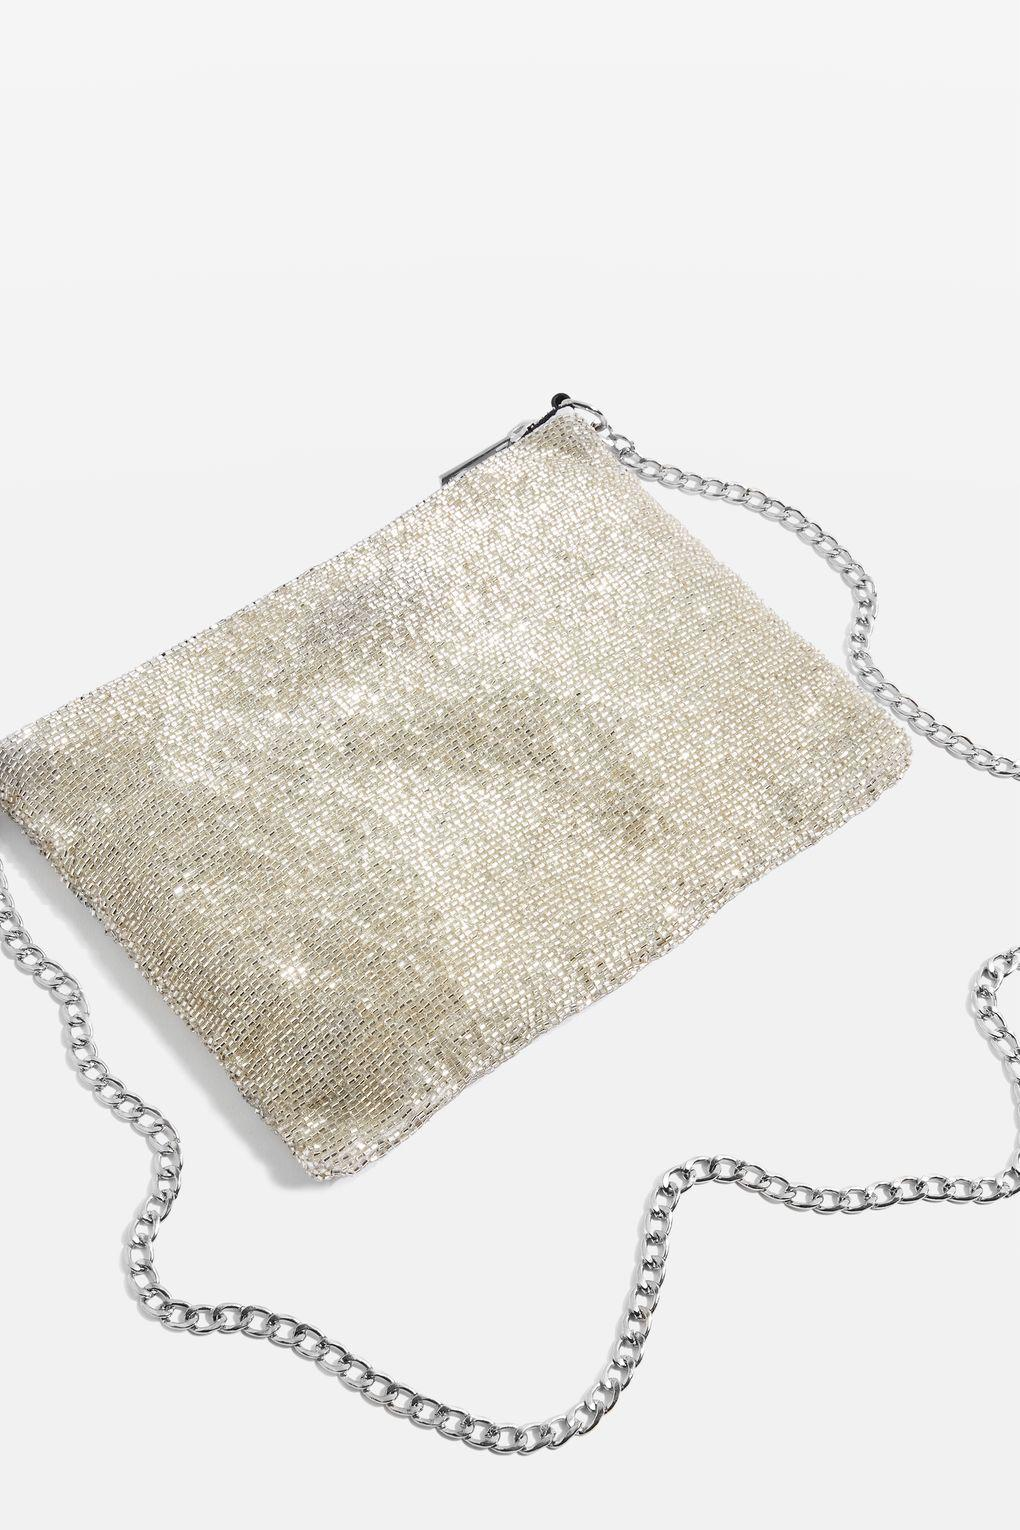 TOPSHOP Synthetic Beaded Cross Body Bag in White